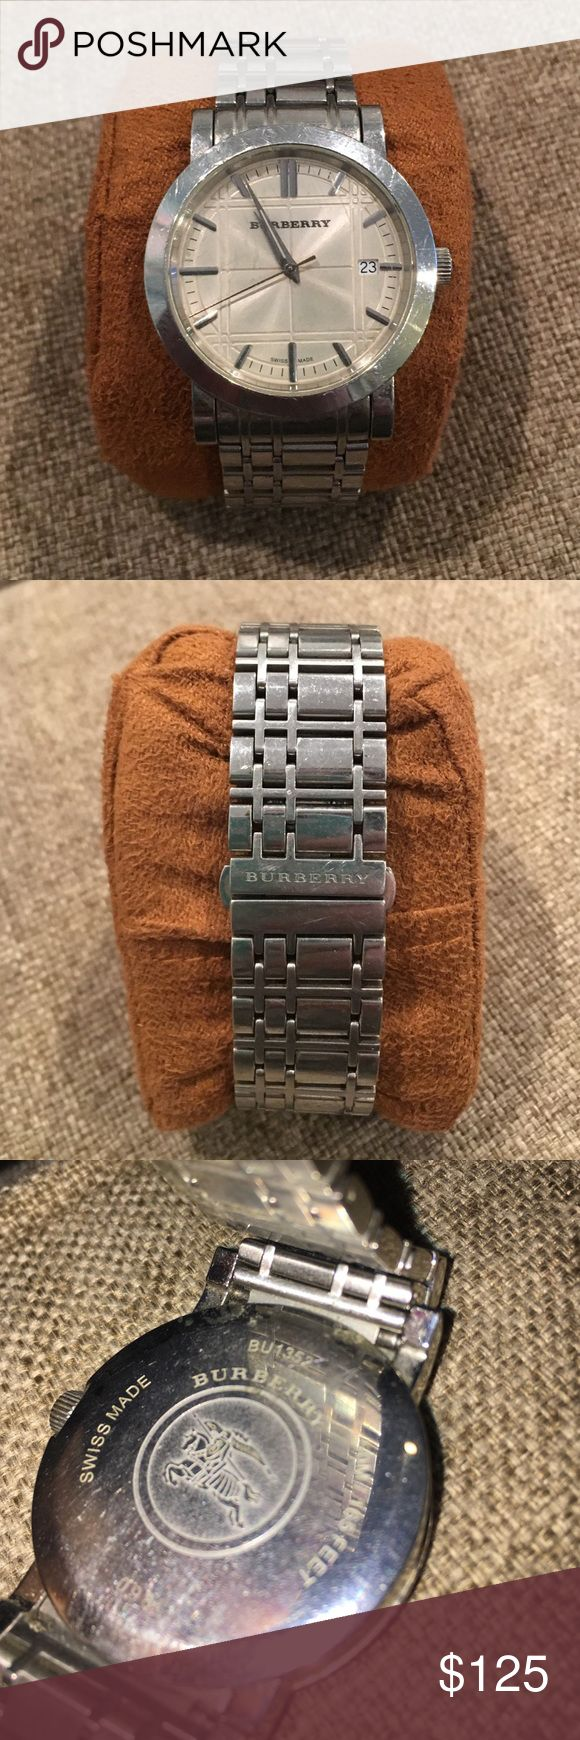 Burberry Men's Watch Heritage BU1352 Burberry men's watch heritage BU1352. Has been worn, few scratches other than that it is in great condition. NO BOX. NEEDS NEW BATTERY. if you would like me to replace the battery prior to shipping I will list for $5 extra. No trades. Will accept reasonable offer. Burberry Accessories Watches